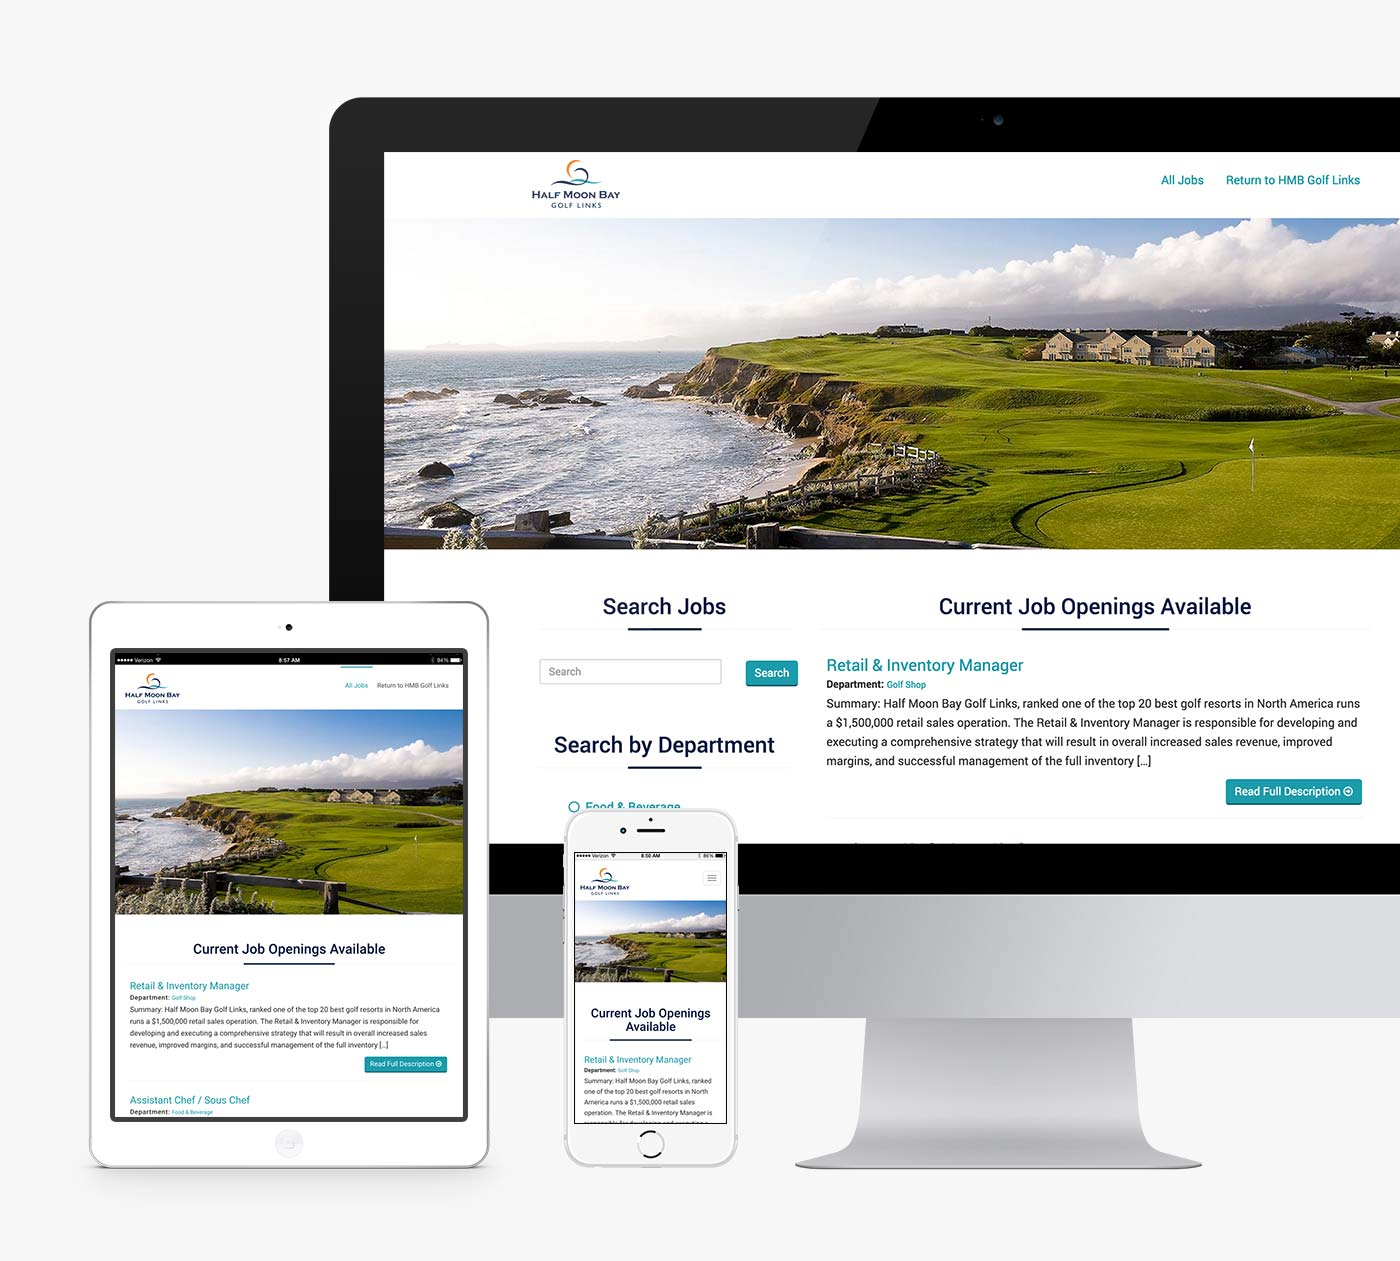 HMB Golf Links Careers Website